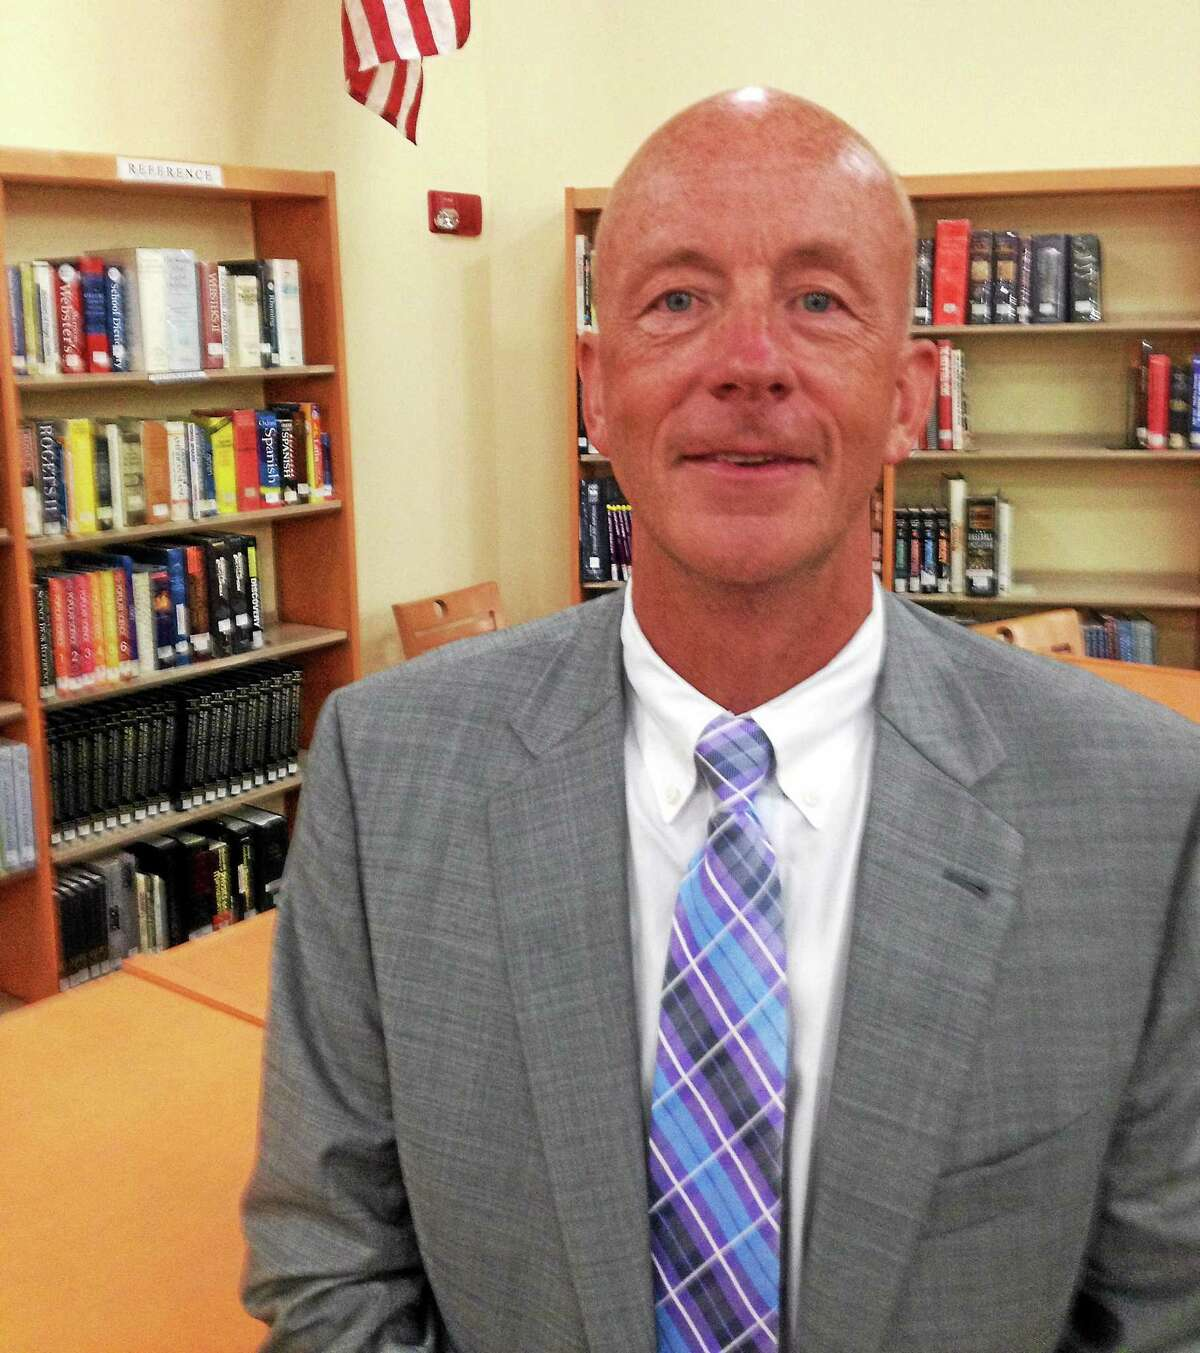 When Portland students headed back to school this week, they did so with a new superintendent, Phillip B. O'Reilly.